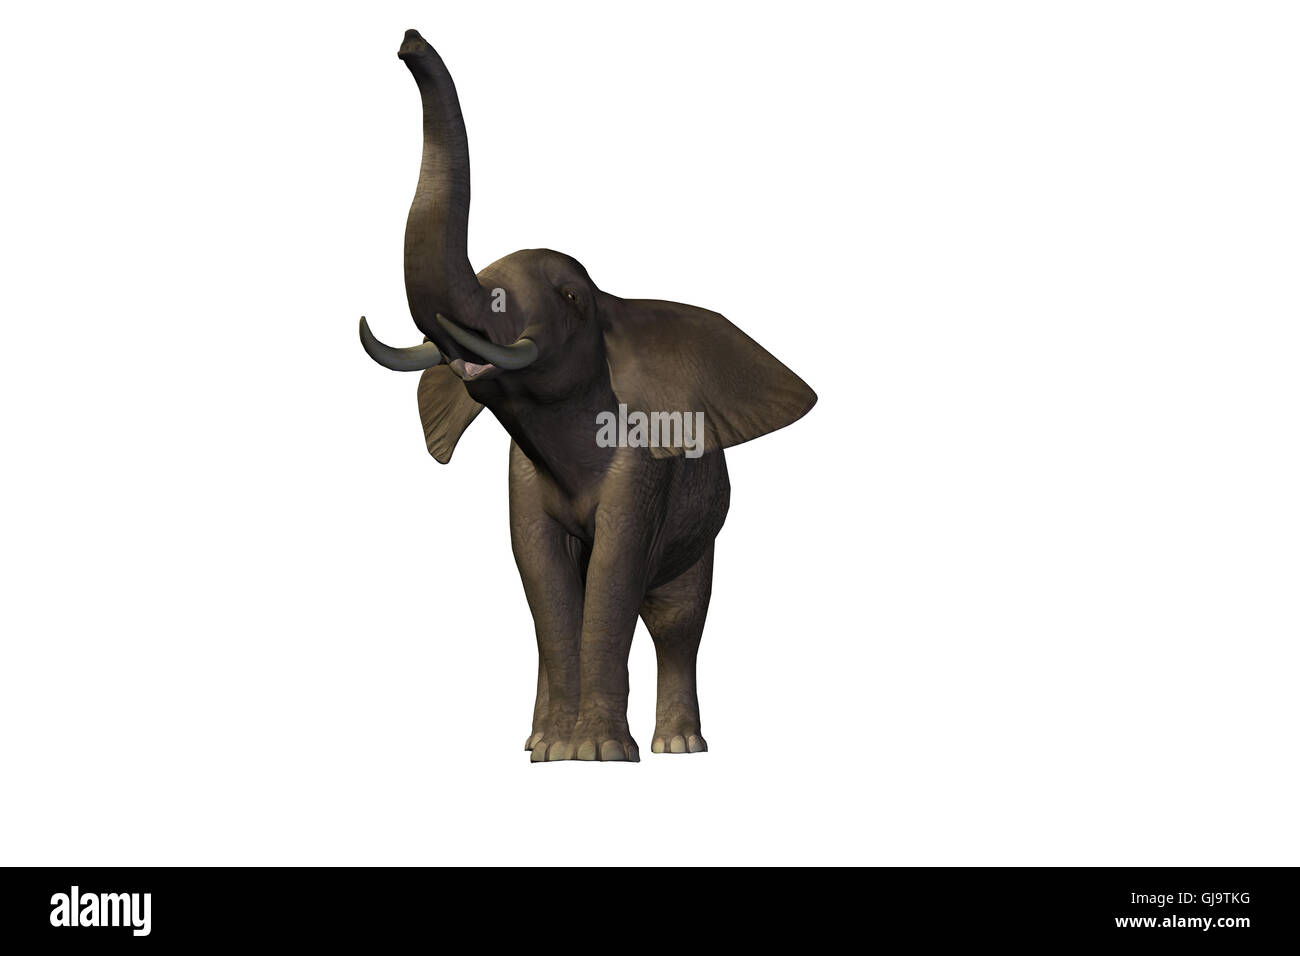 ELEPHANT 2 - Stock Image